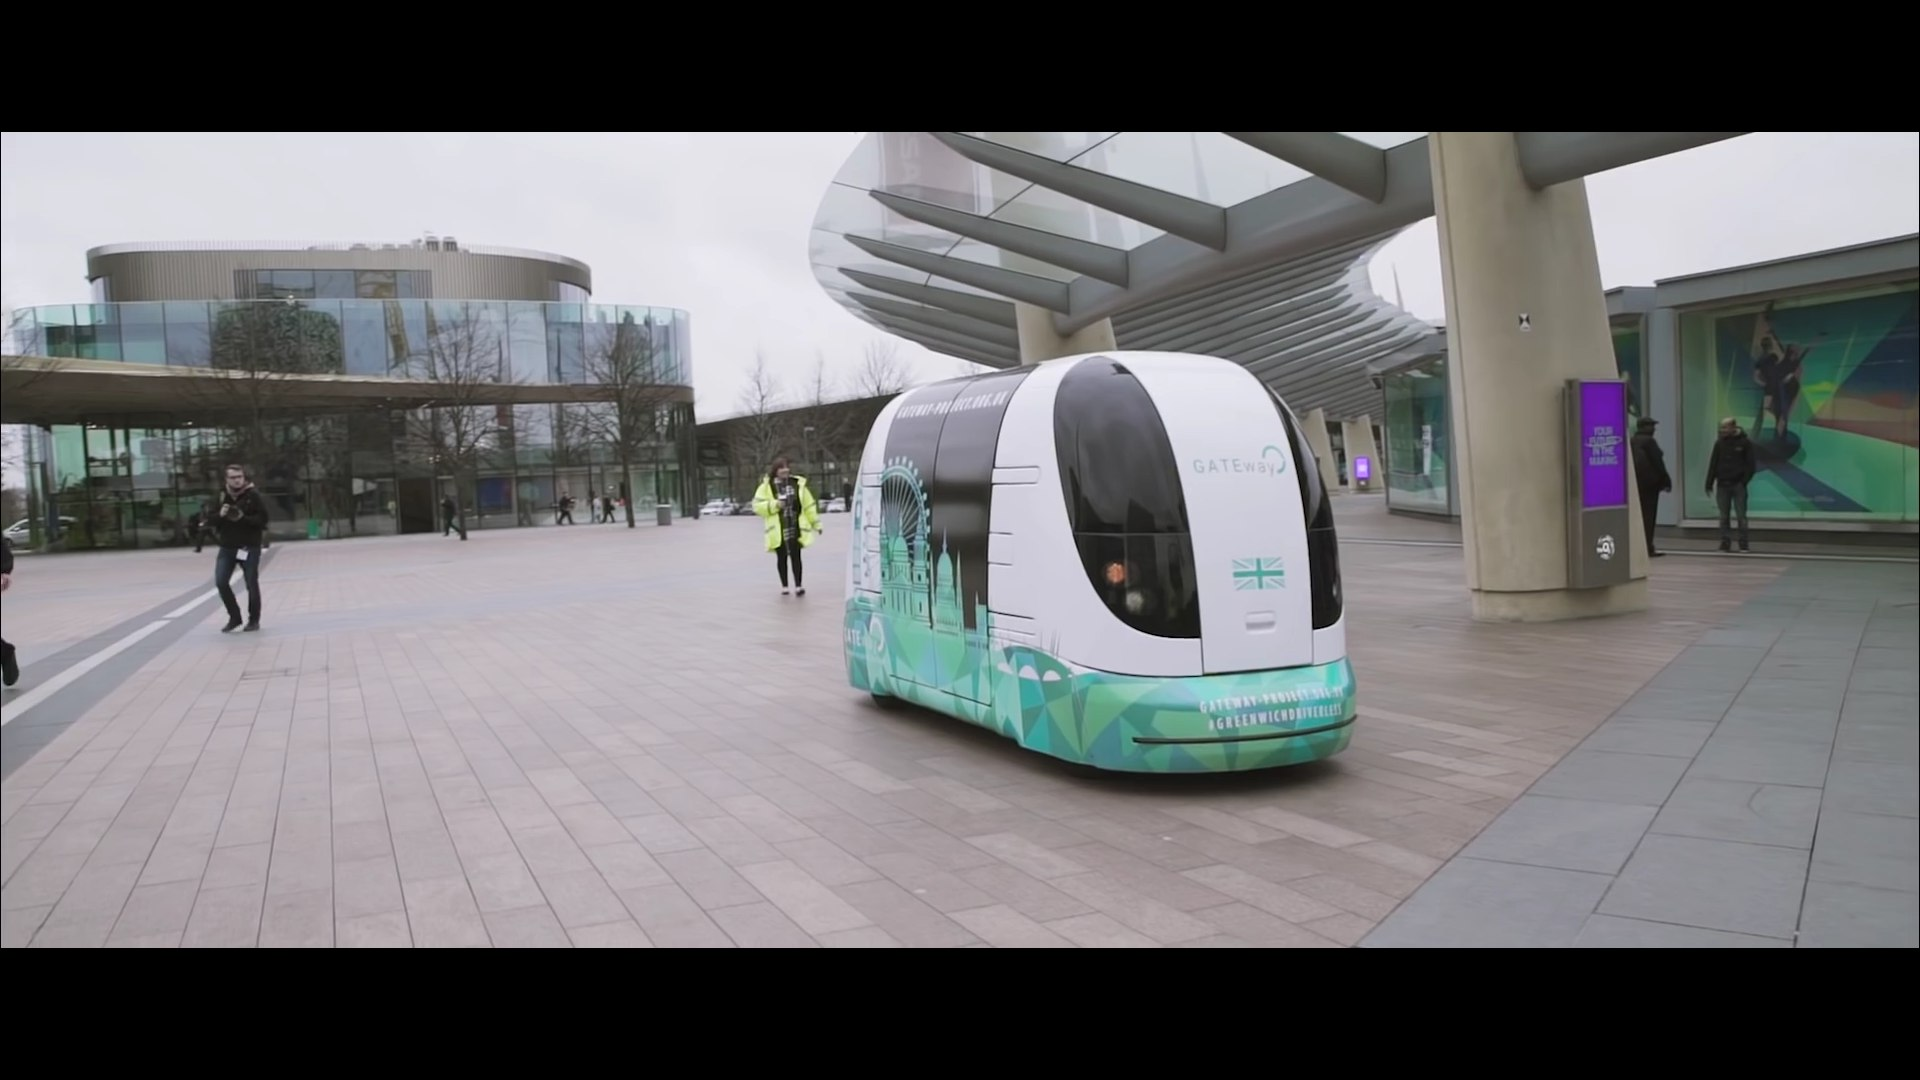 London trials driverless shuttle